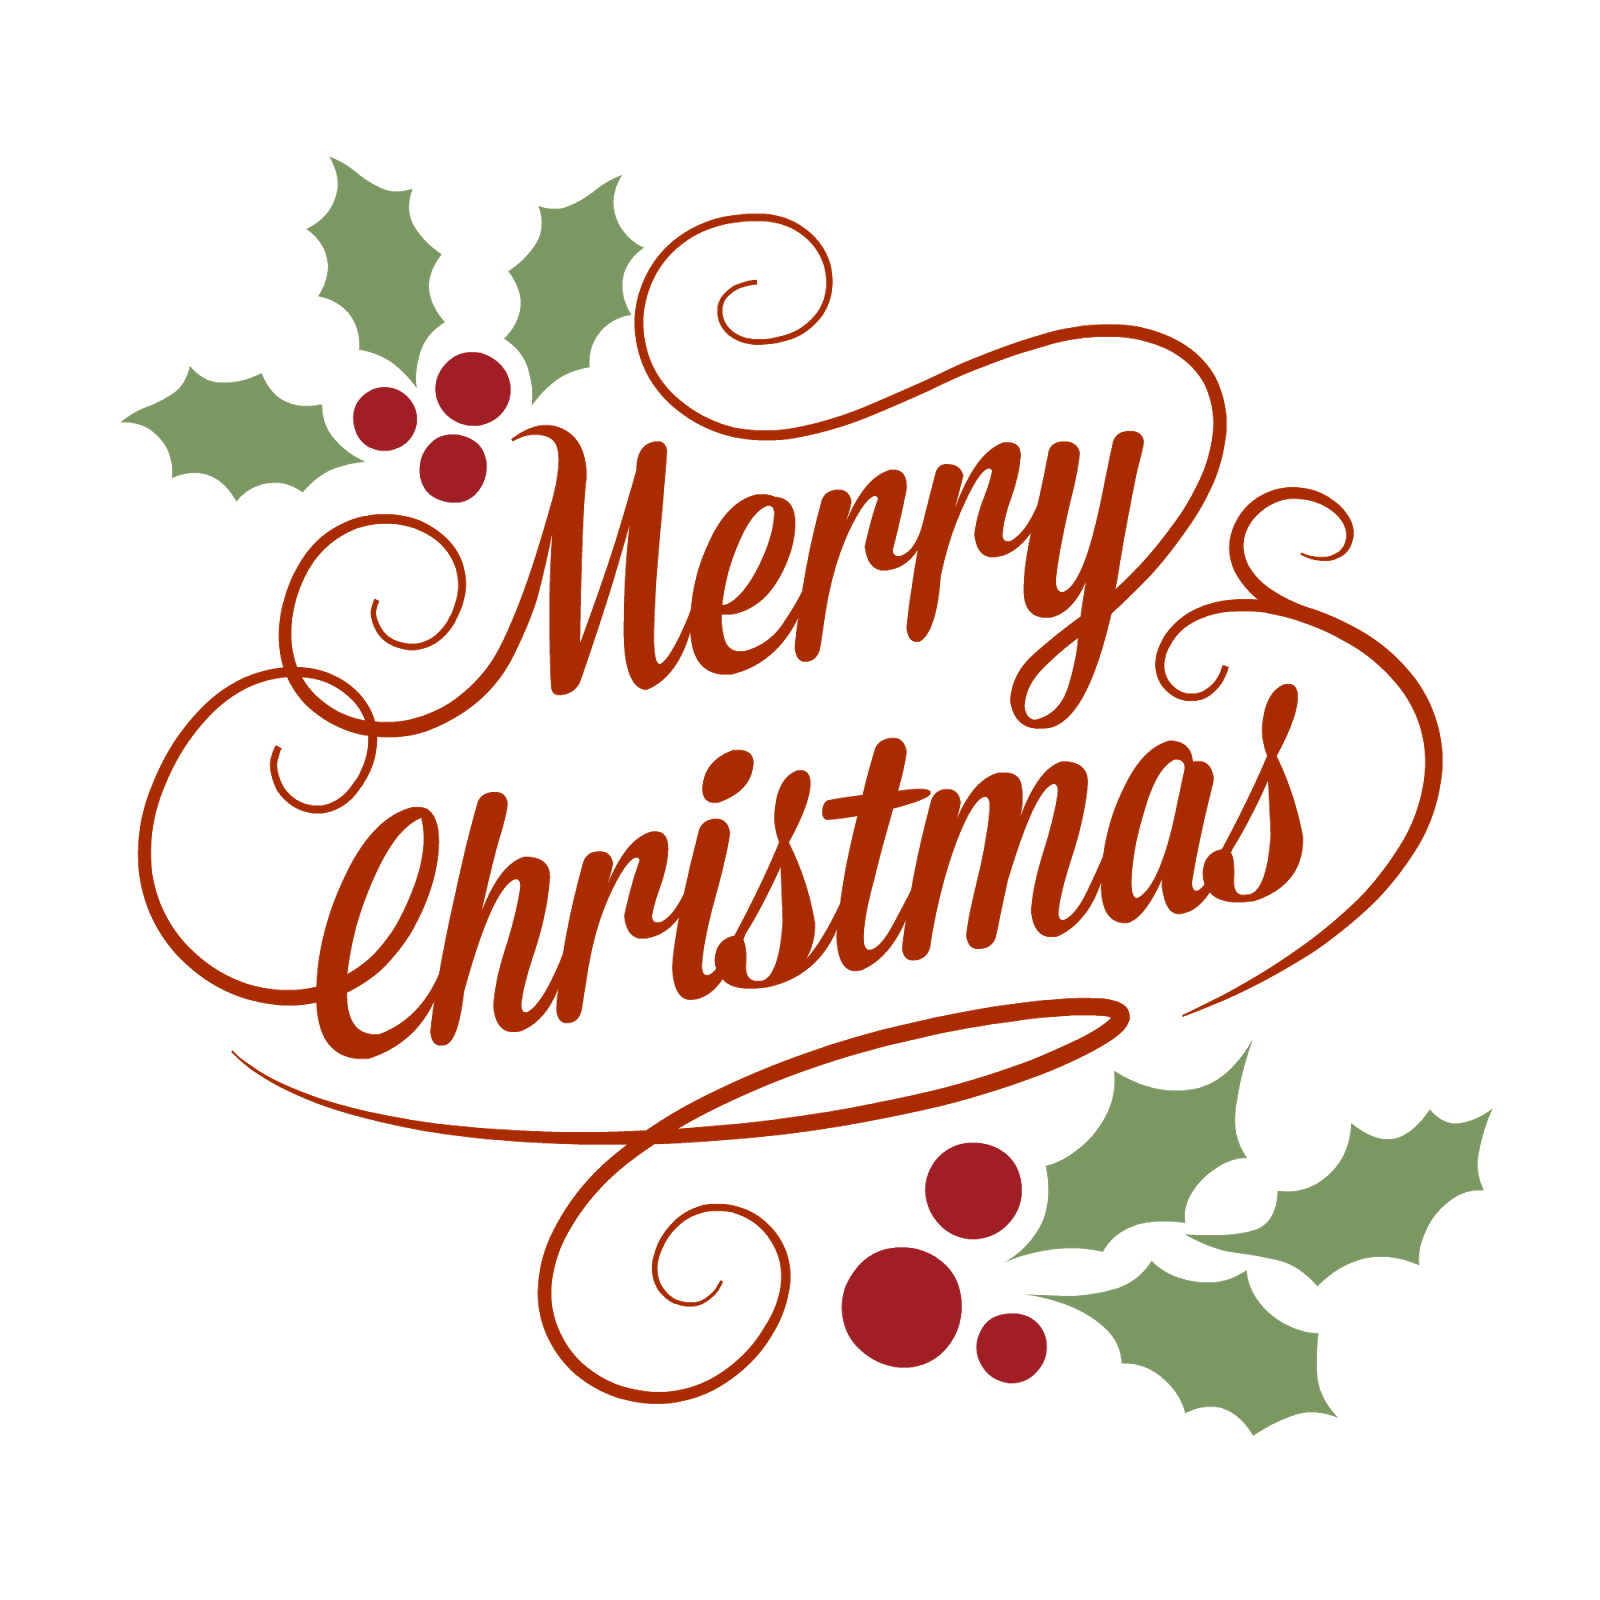 Merry Christmas Text PNG - 16086